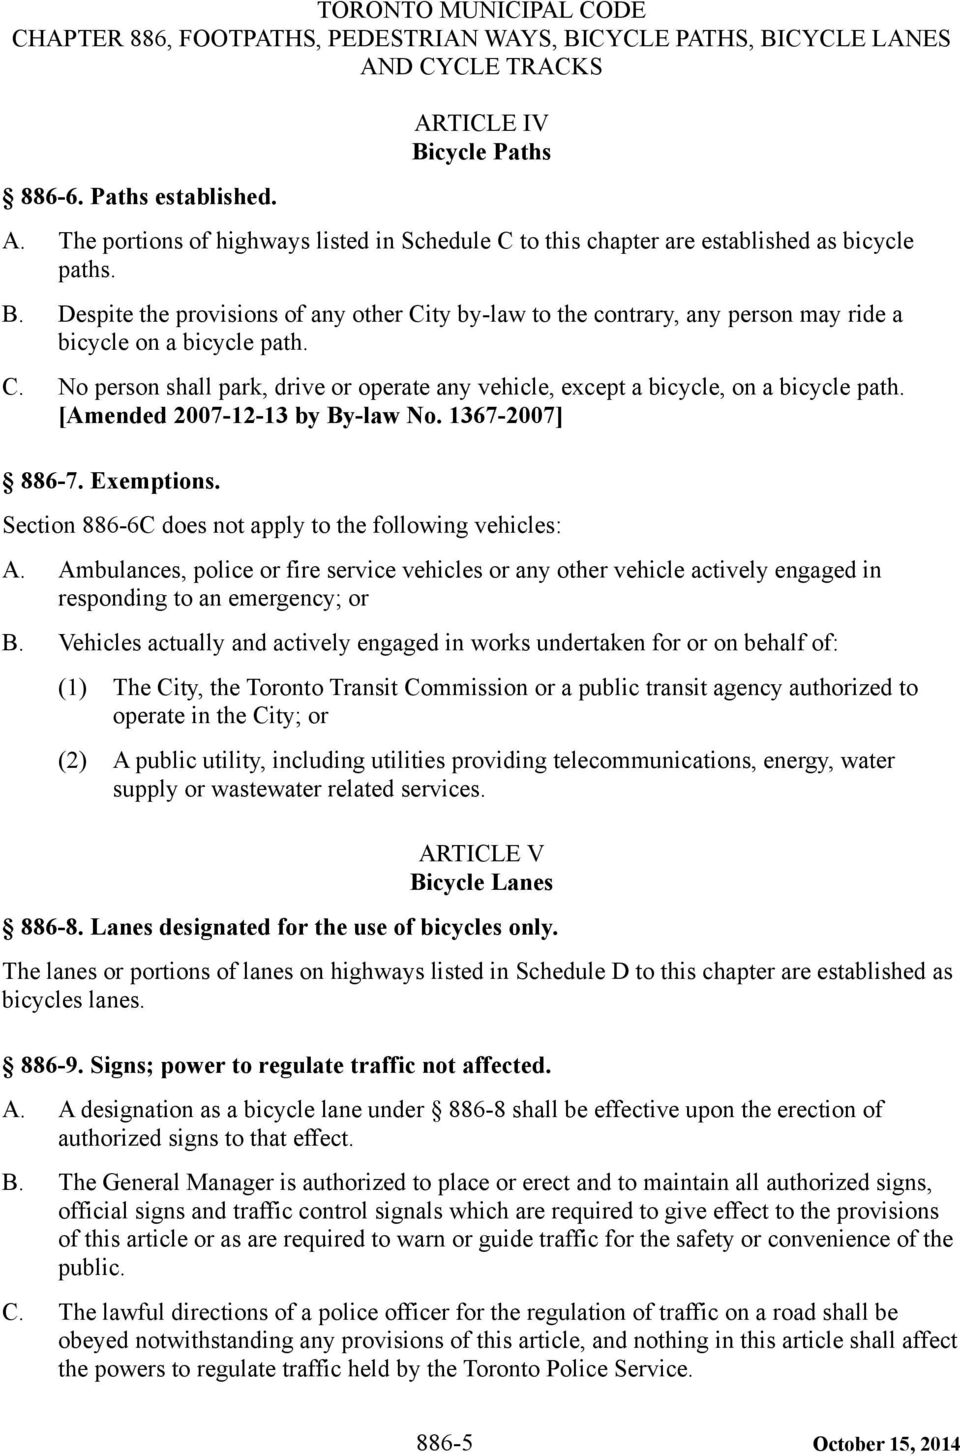 Section 886-6C does not apply to the following vehicles: A. Ambulances, police or fire service vehicles or any other vehicle actively engaged in responding to an emergency; or B.